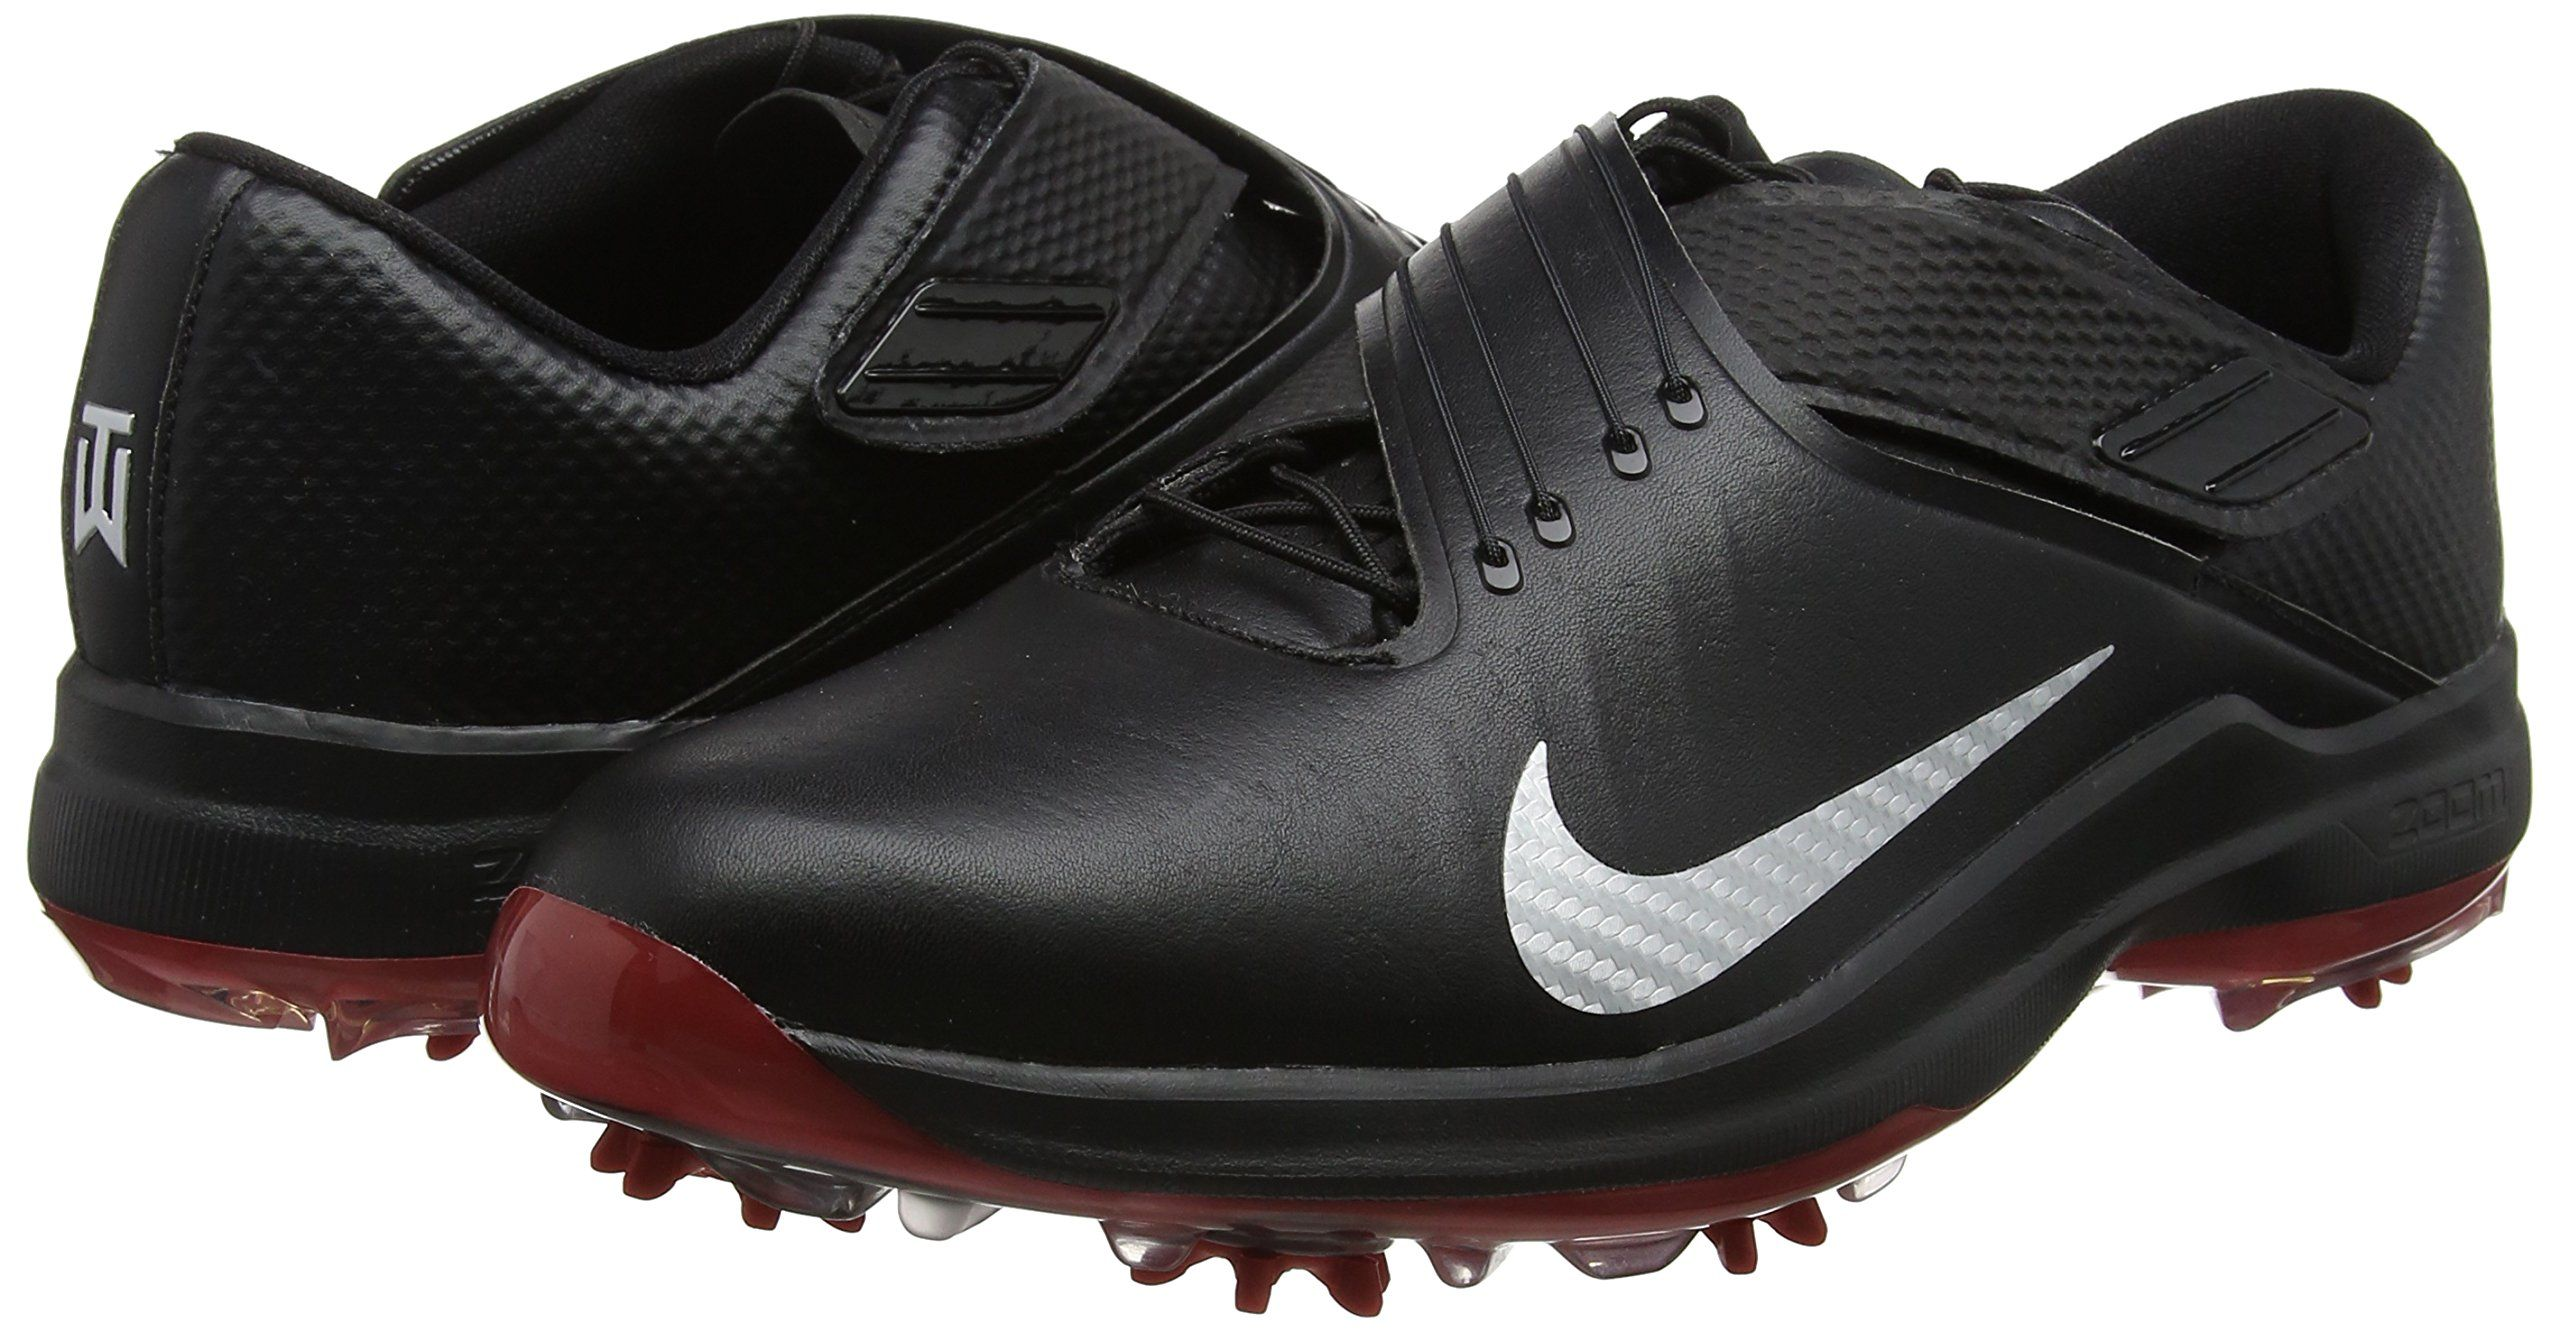 Golf Shoes Mens     NIKE Mens TW17 Golf Shoes 880955 001 Size 9 US     Make  sure to take a look at this incredible item. (This is an affiliate link). 056a1cf44